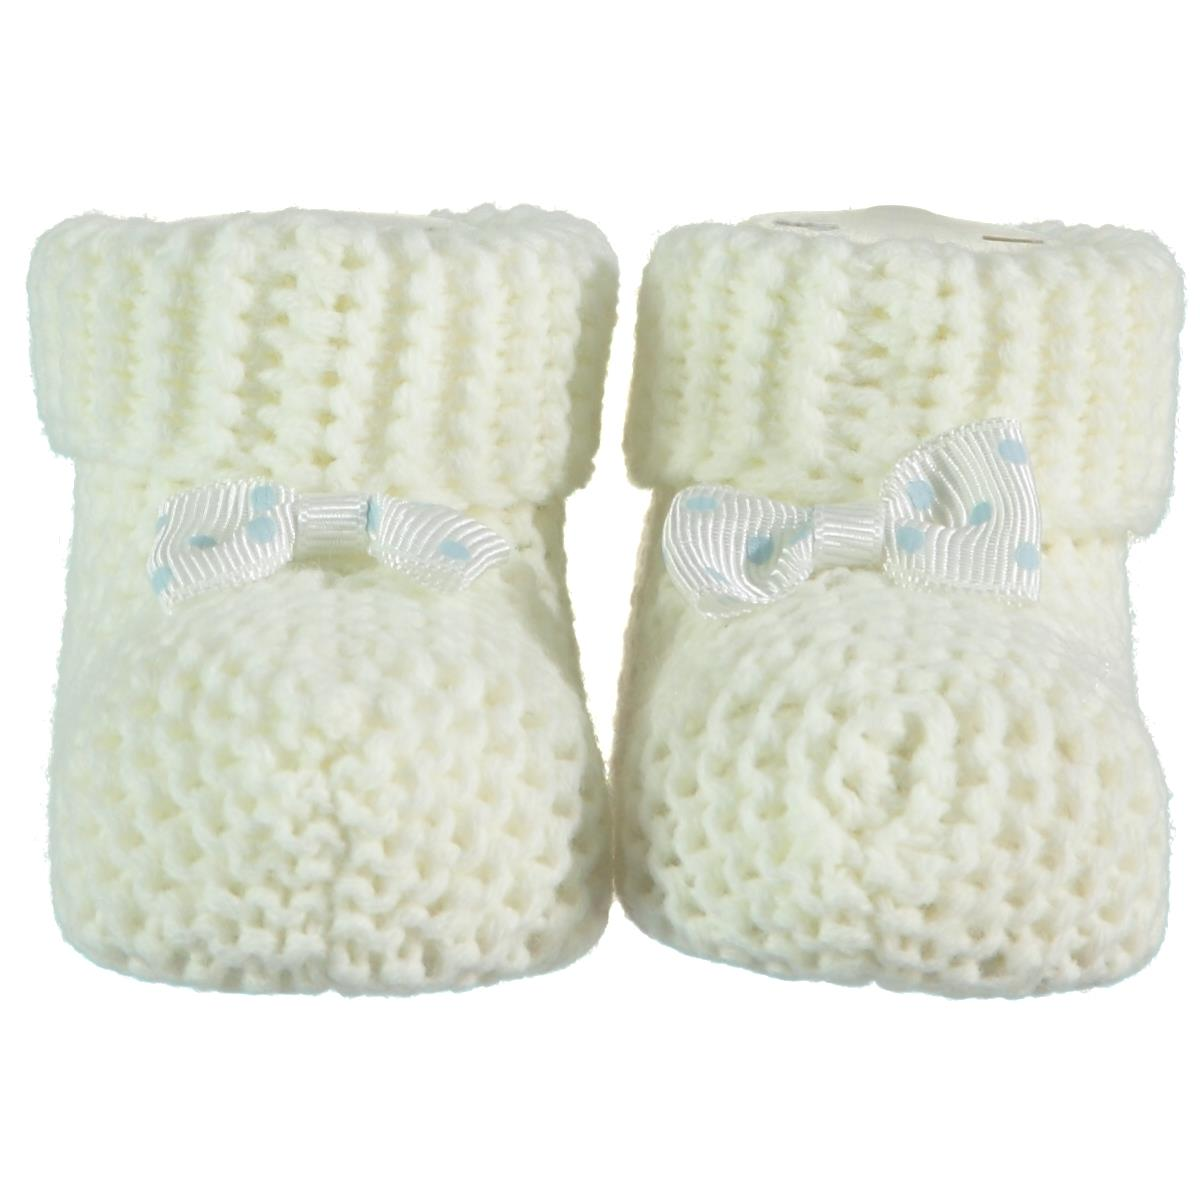 Recos 0-6 Months Baby Booties Ecru Knitwear Accessories